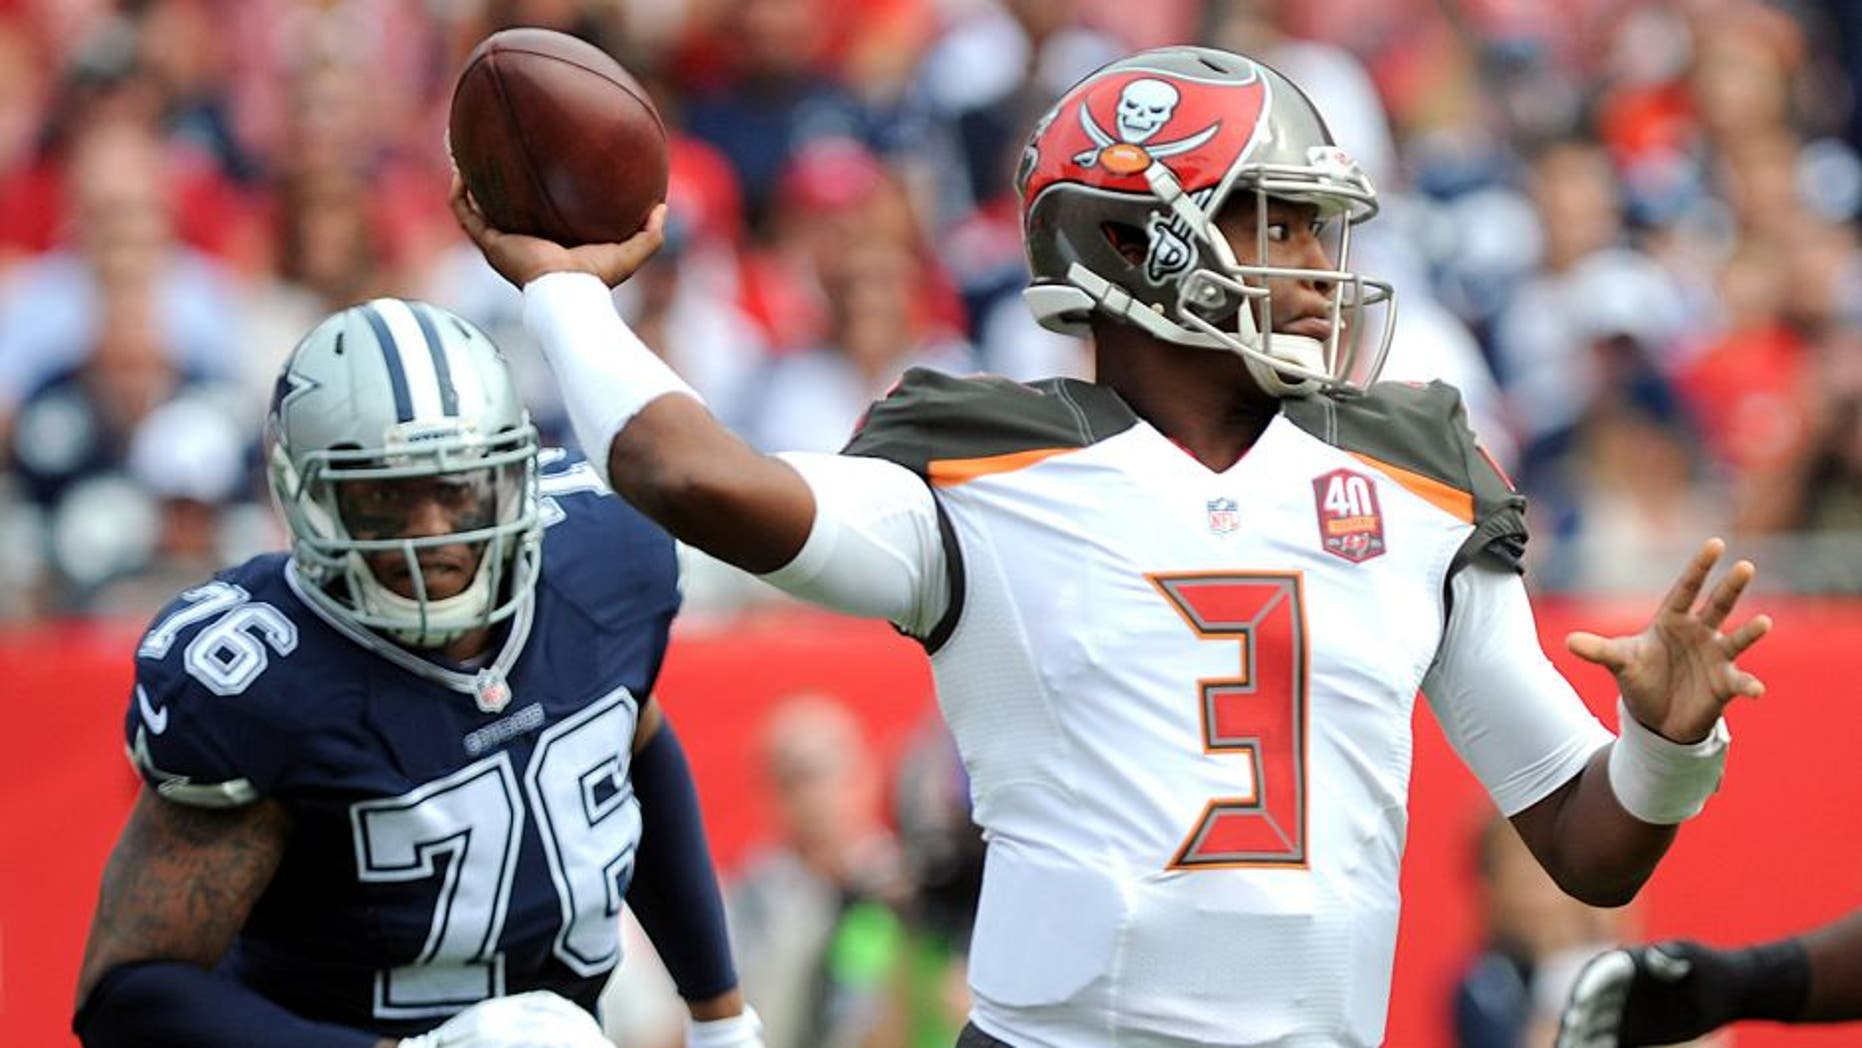 TAMPA, FL - NOVEMBER 15: Quarterback Jameis Winston #3 of the Tampa Bay Buccaneers passes against the Dallas Cowboys at Raymond James Stadium on November 15, 2015 in Tampa, Florida. (Photo by Cliff McBride/Getty Images)